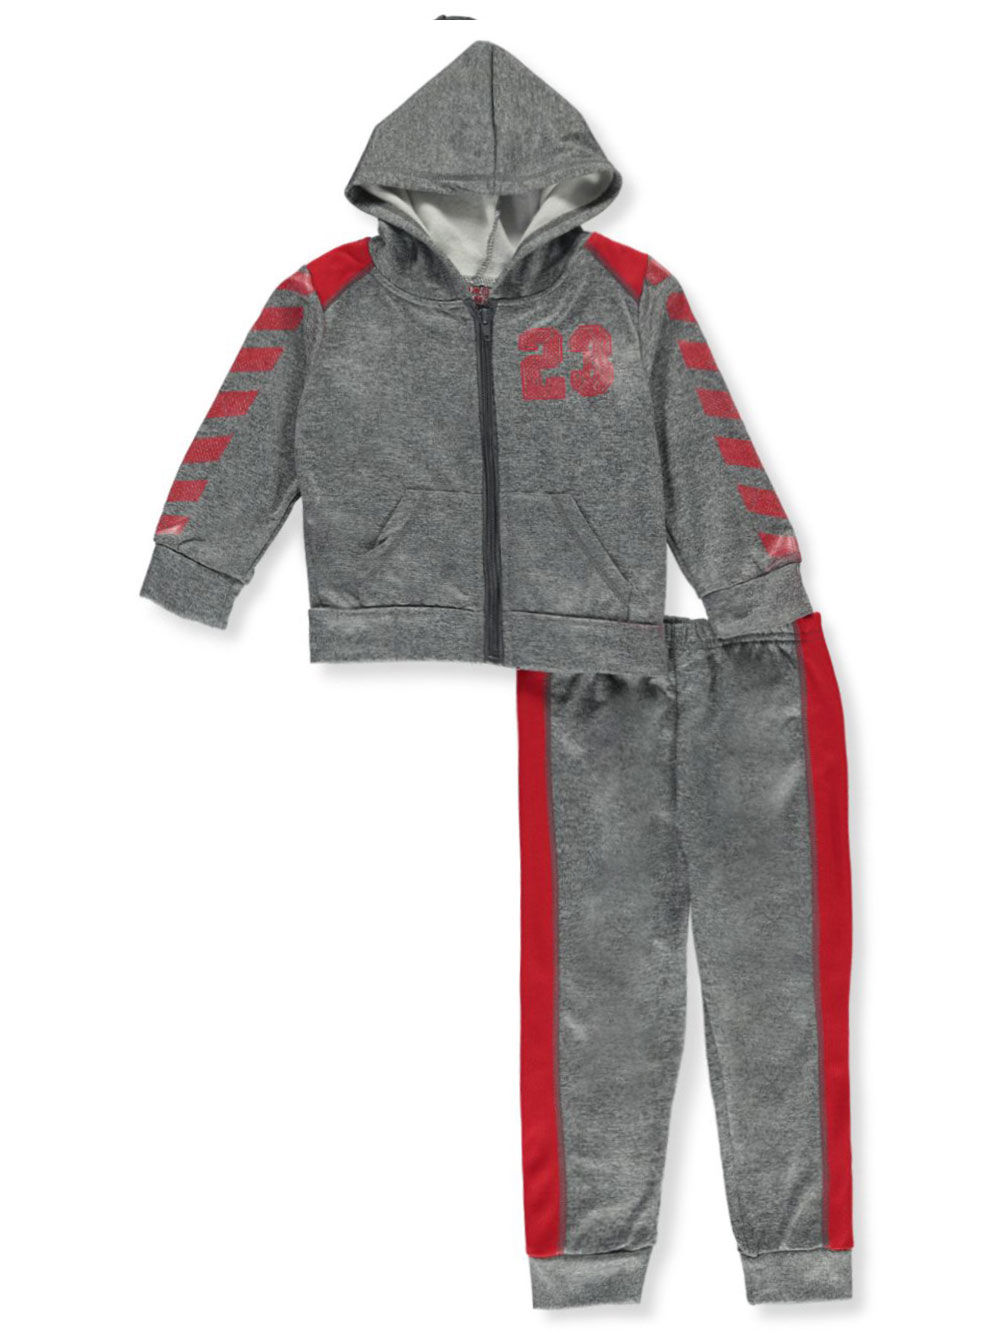 Boys Charcoal and Red Sets